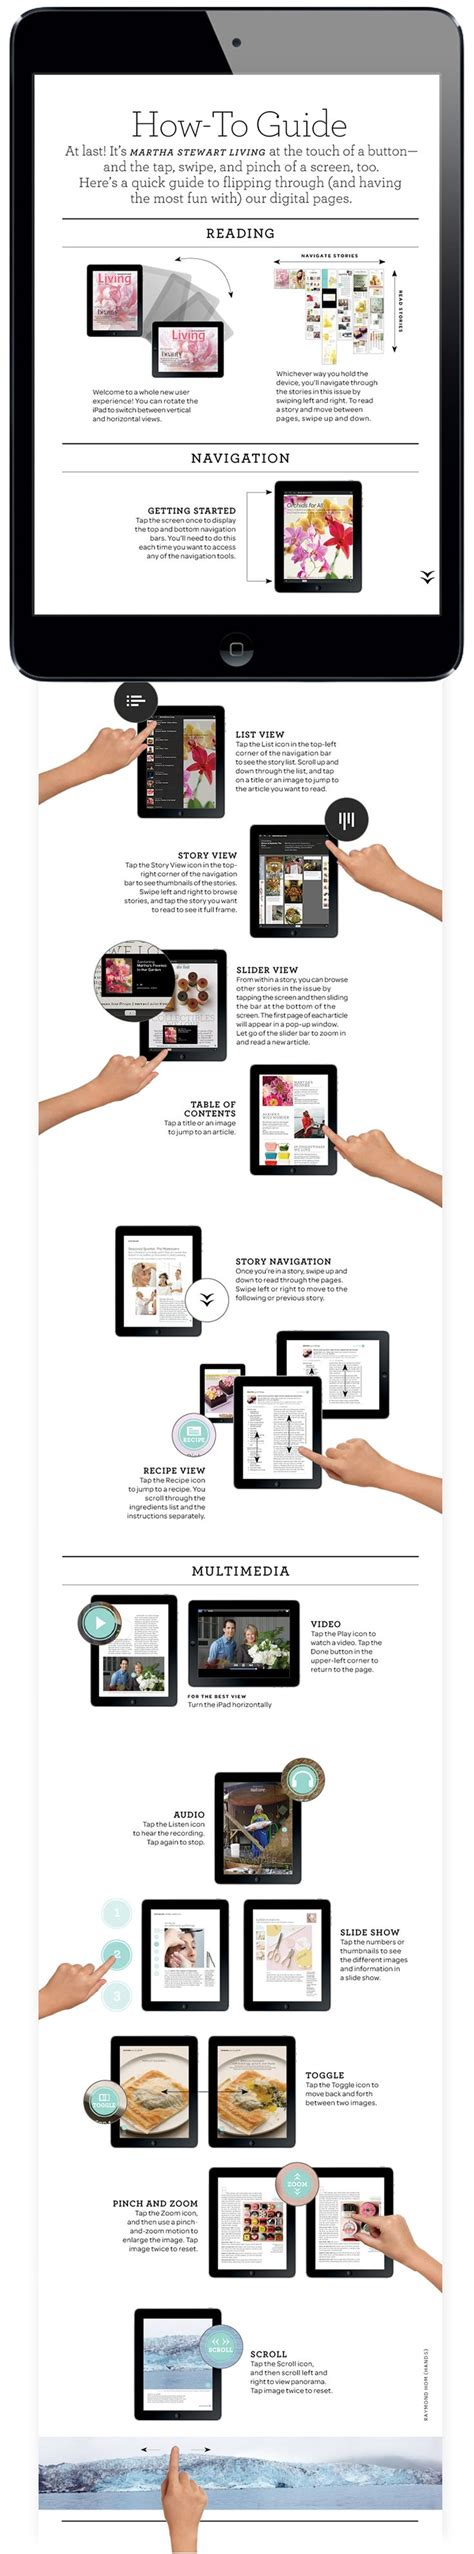 ipad layout design guidelines navigation how to guide martha stewart living magazine